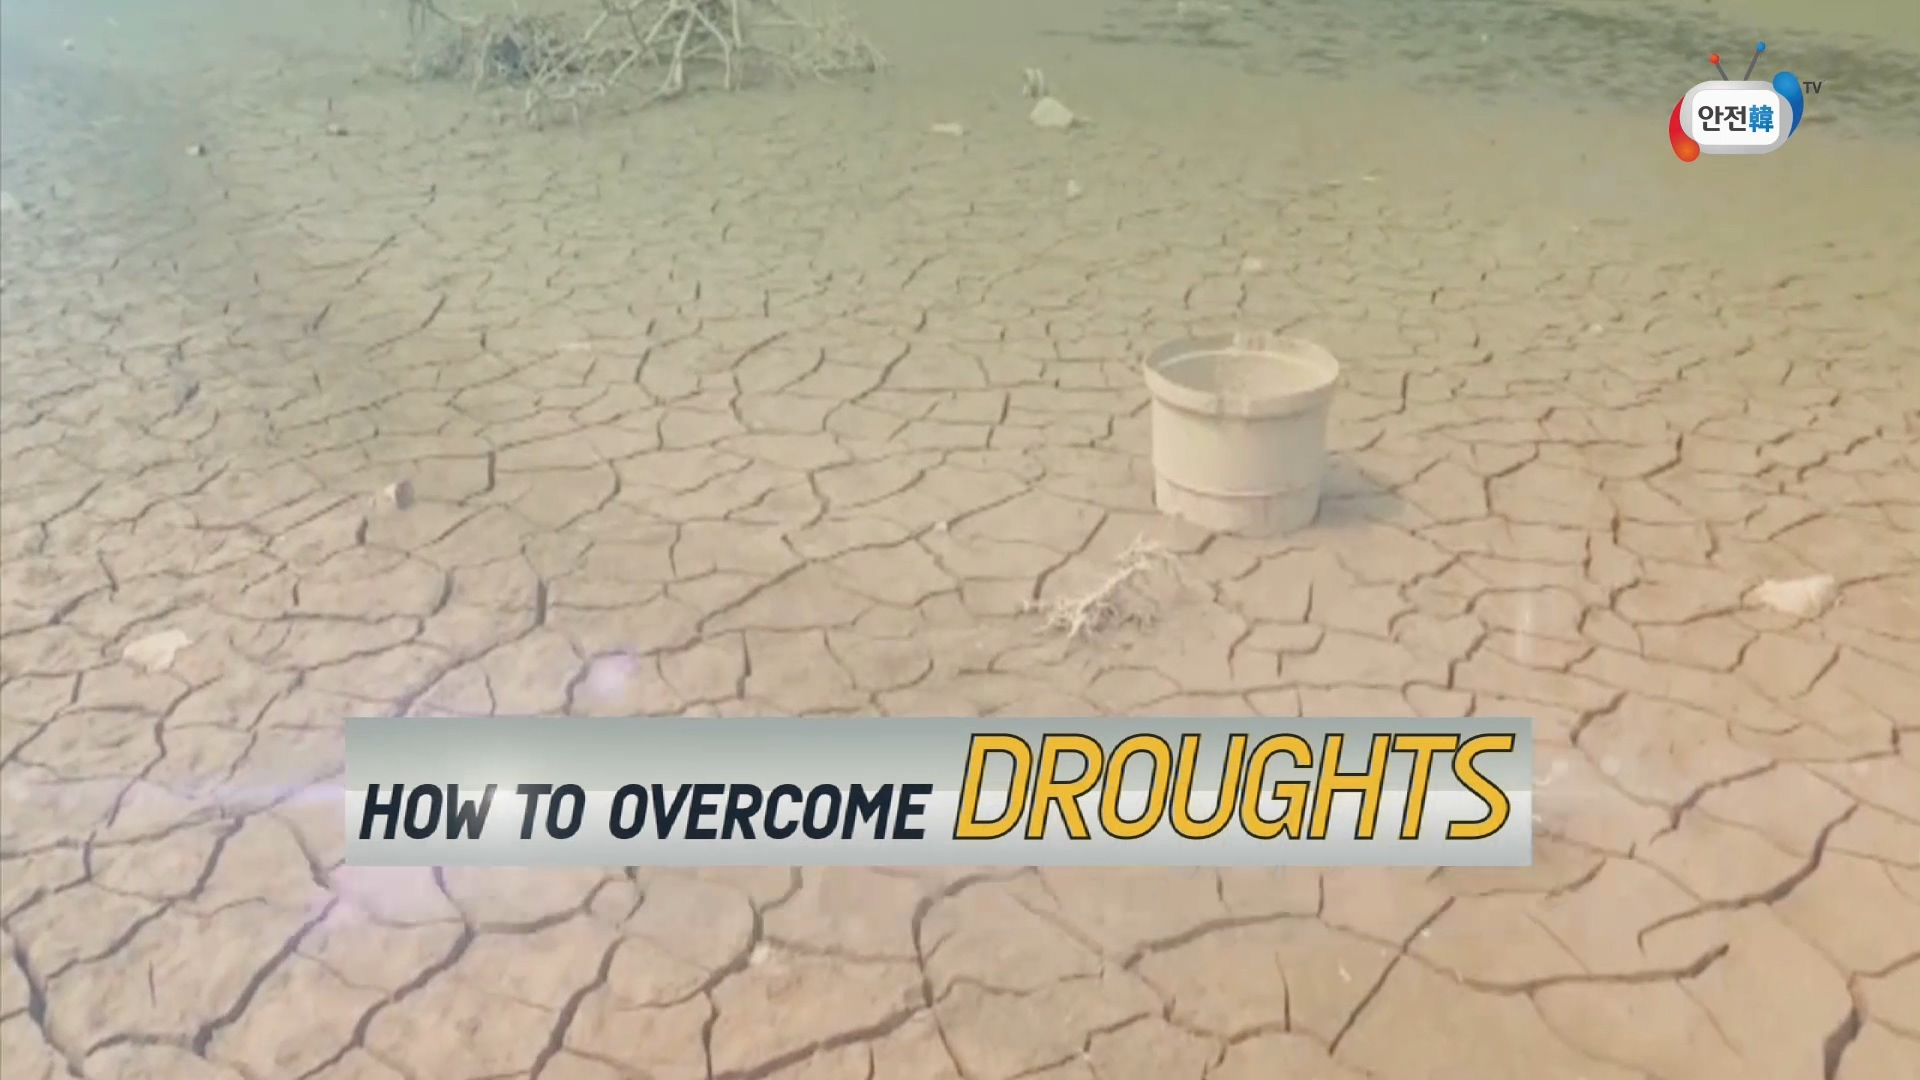 How to overcome droughts